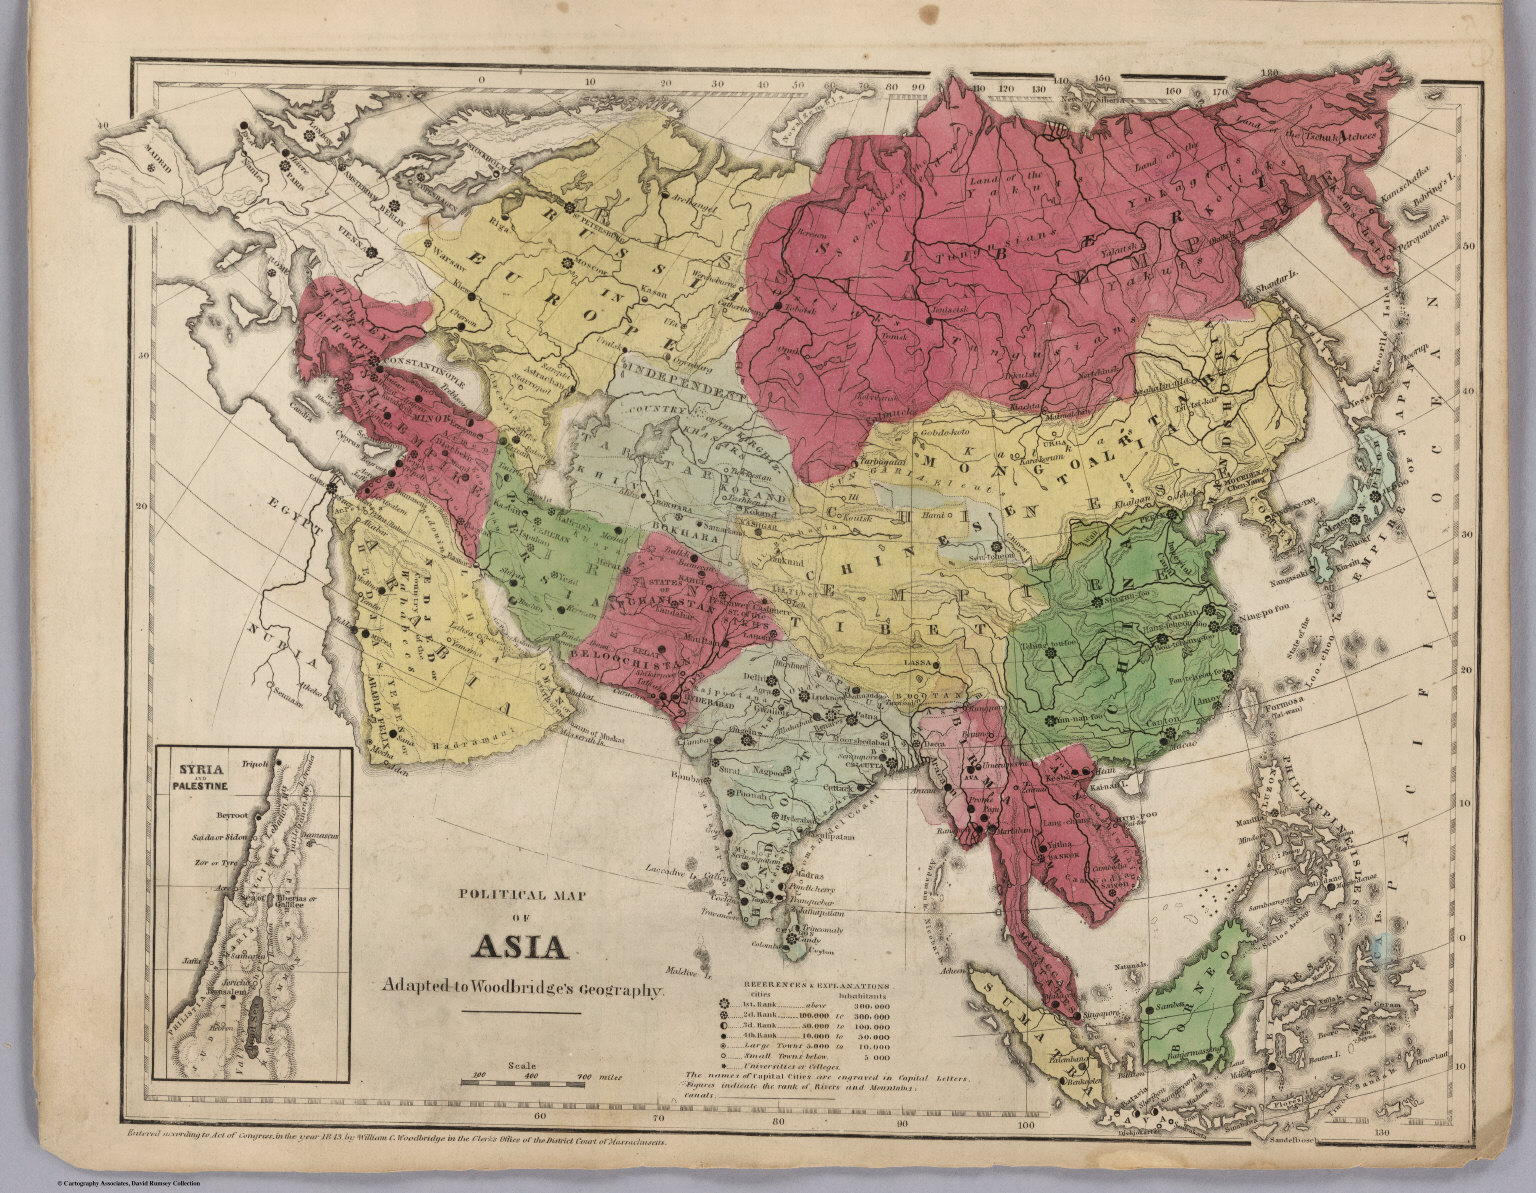 Political Map Of Asia - David Rumsey Historical Map Collection